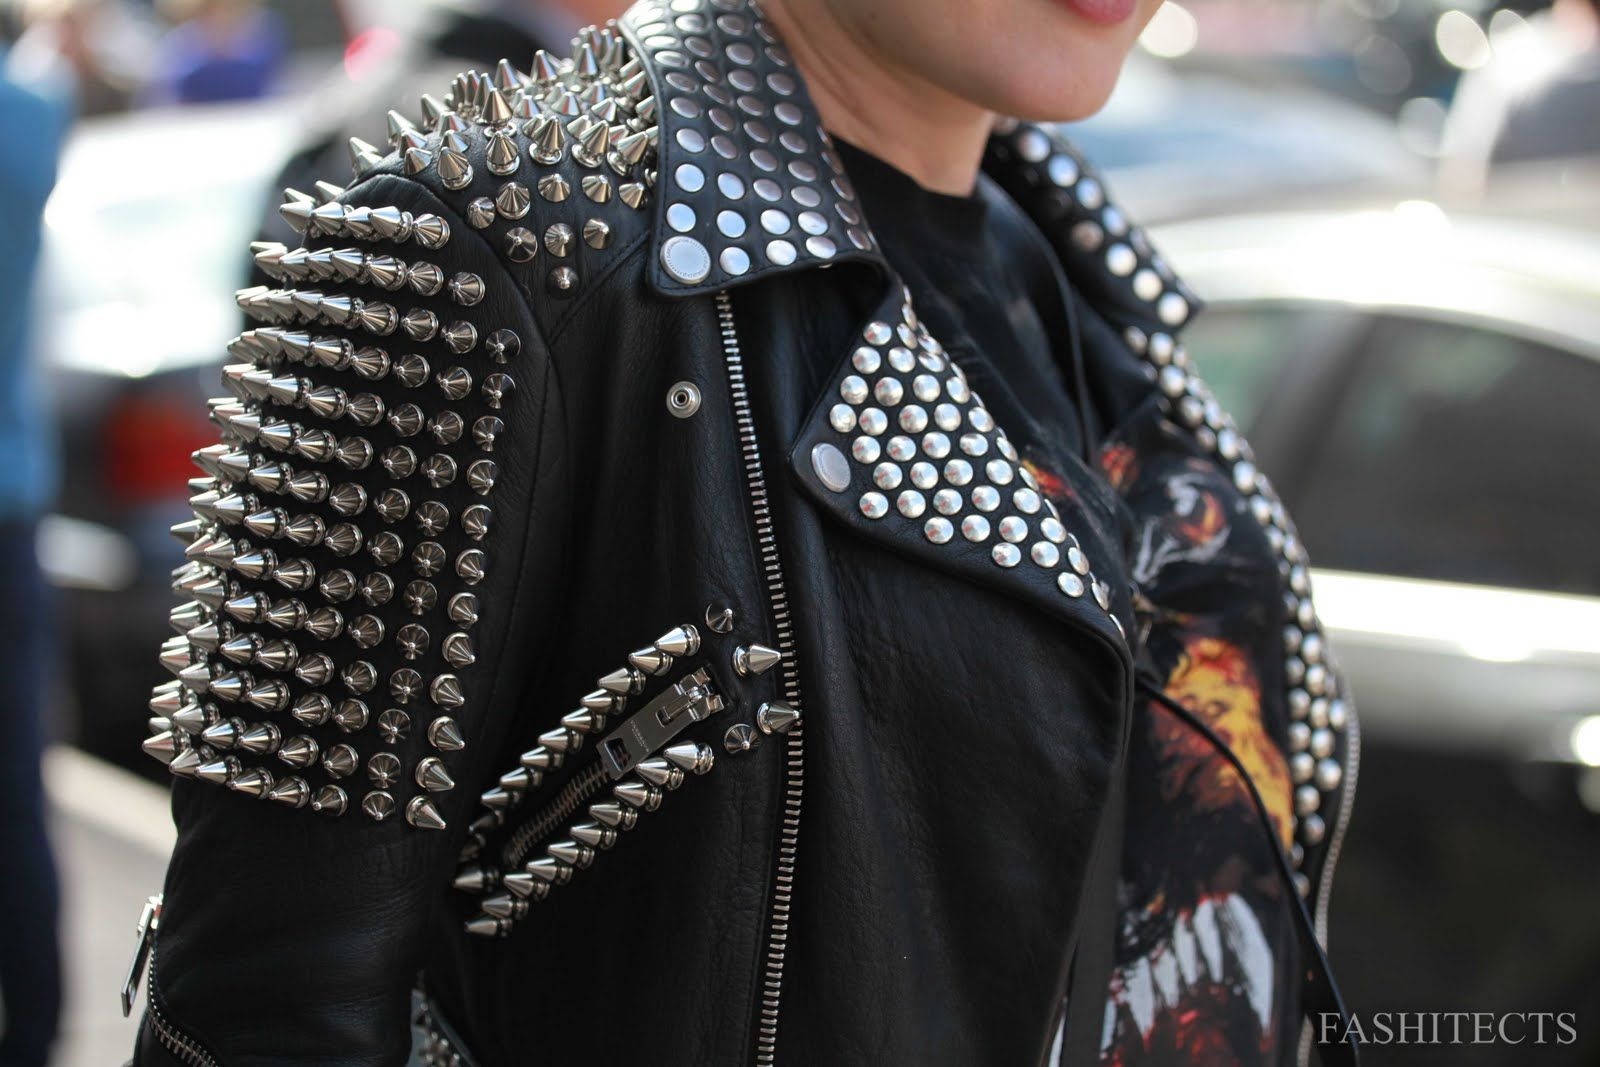 Spiked leather jackets